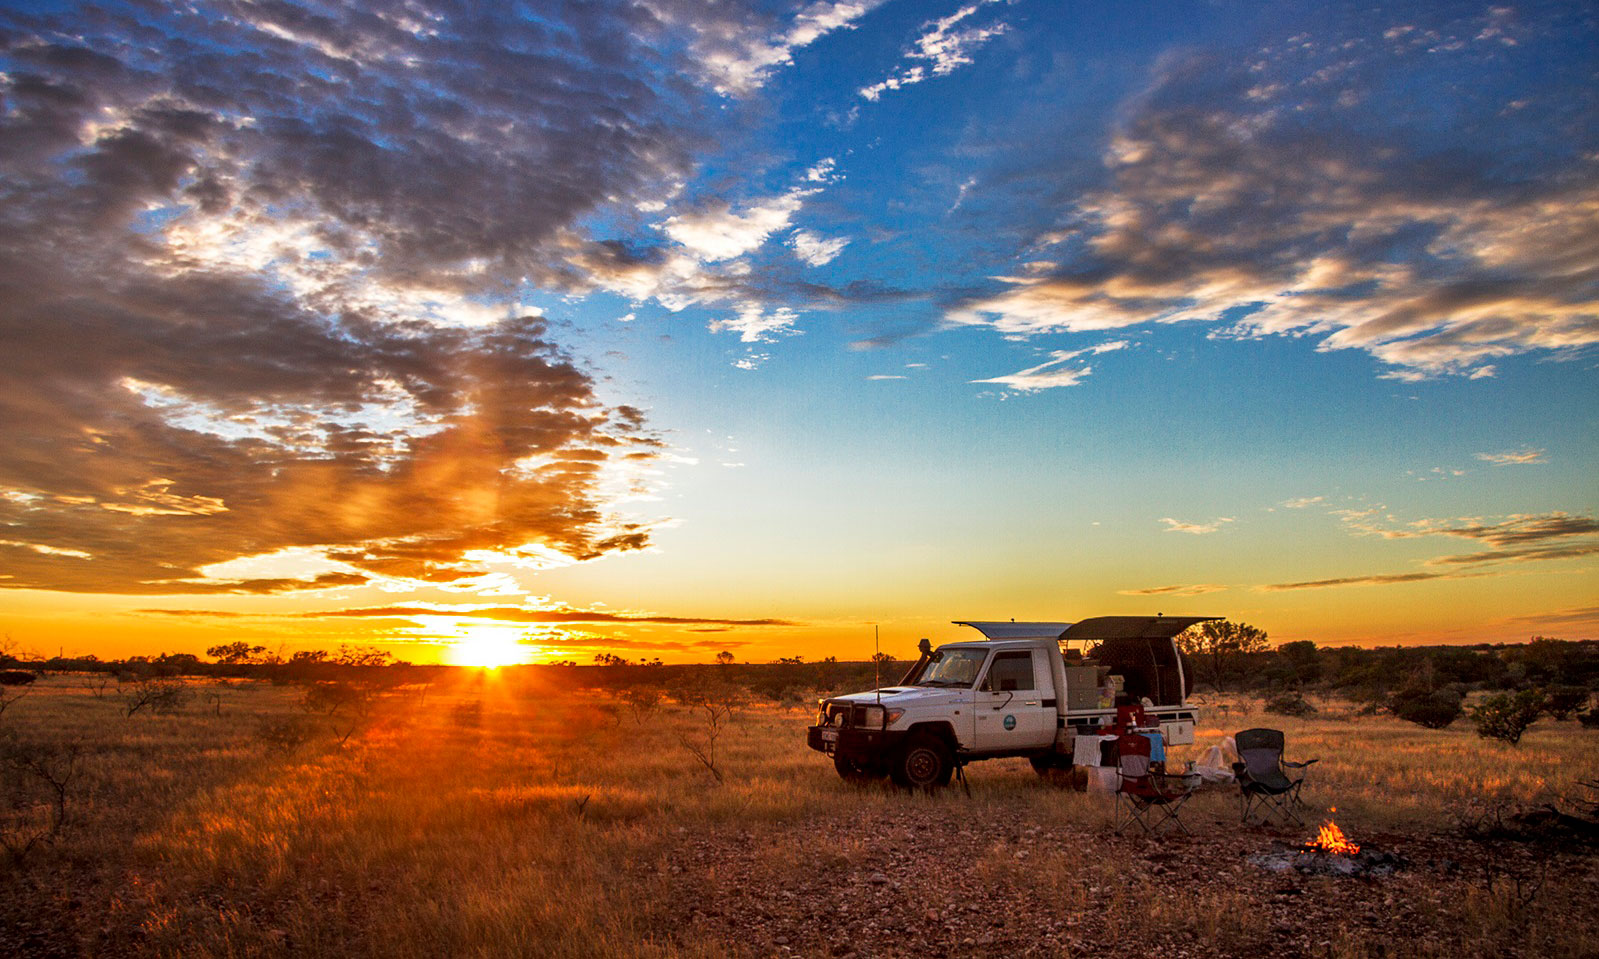 A sunset with a CSIRO ute in the foreground